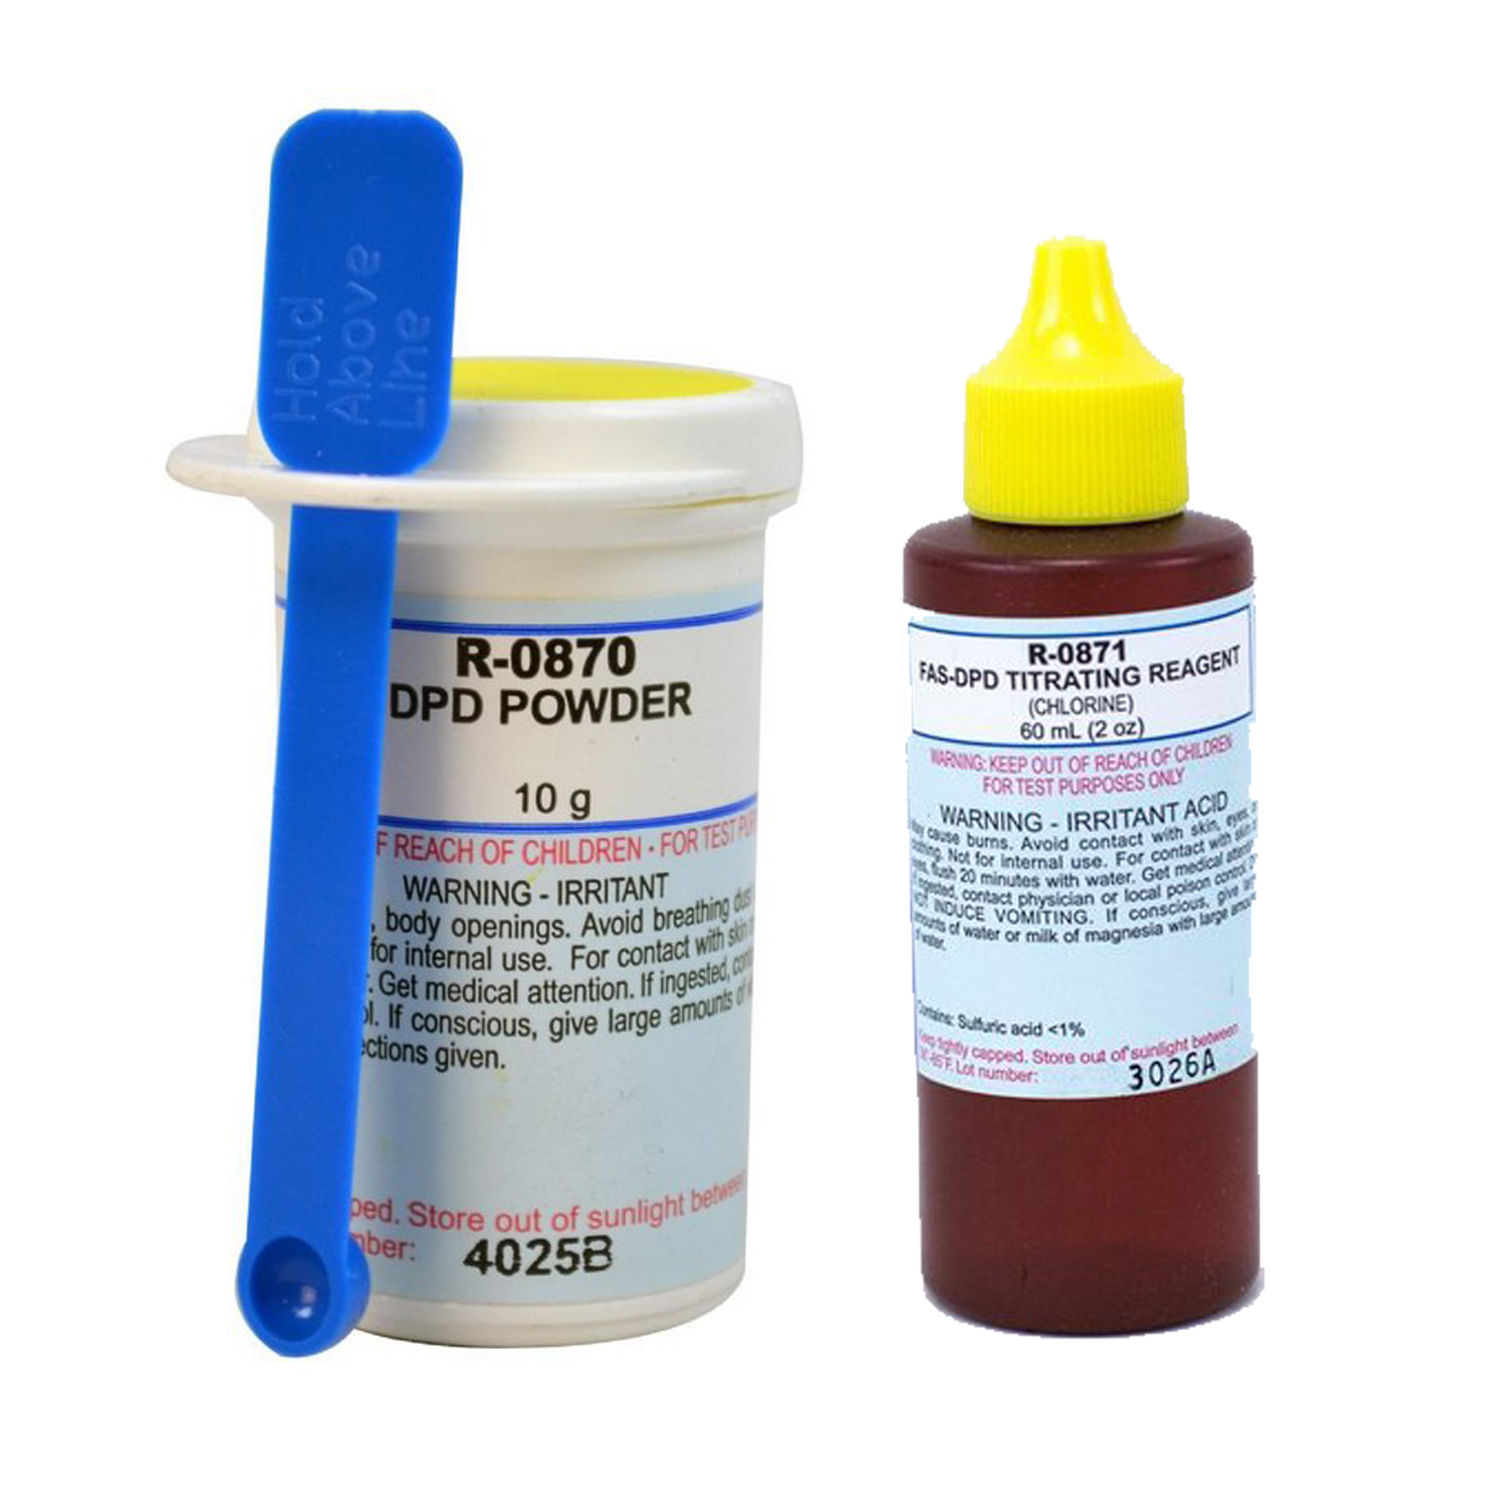 Taylor Replacement DPD 10-Gram Powder w/ 2-Ounce Titrating Reagent for Chlorine